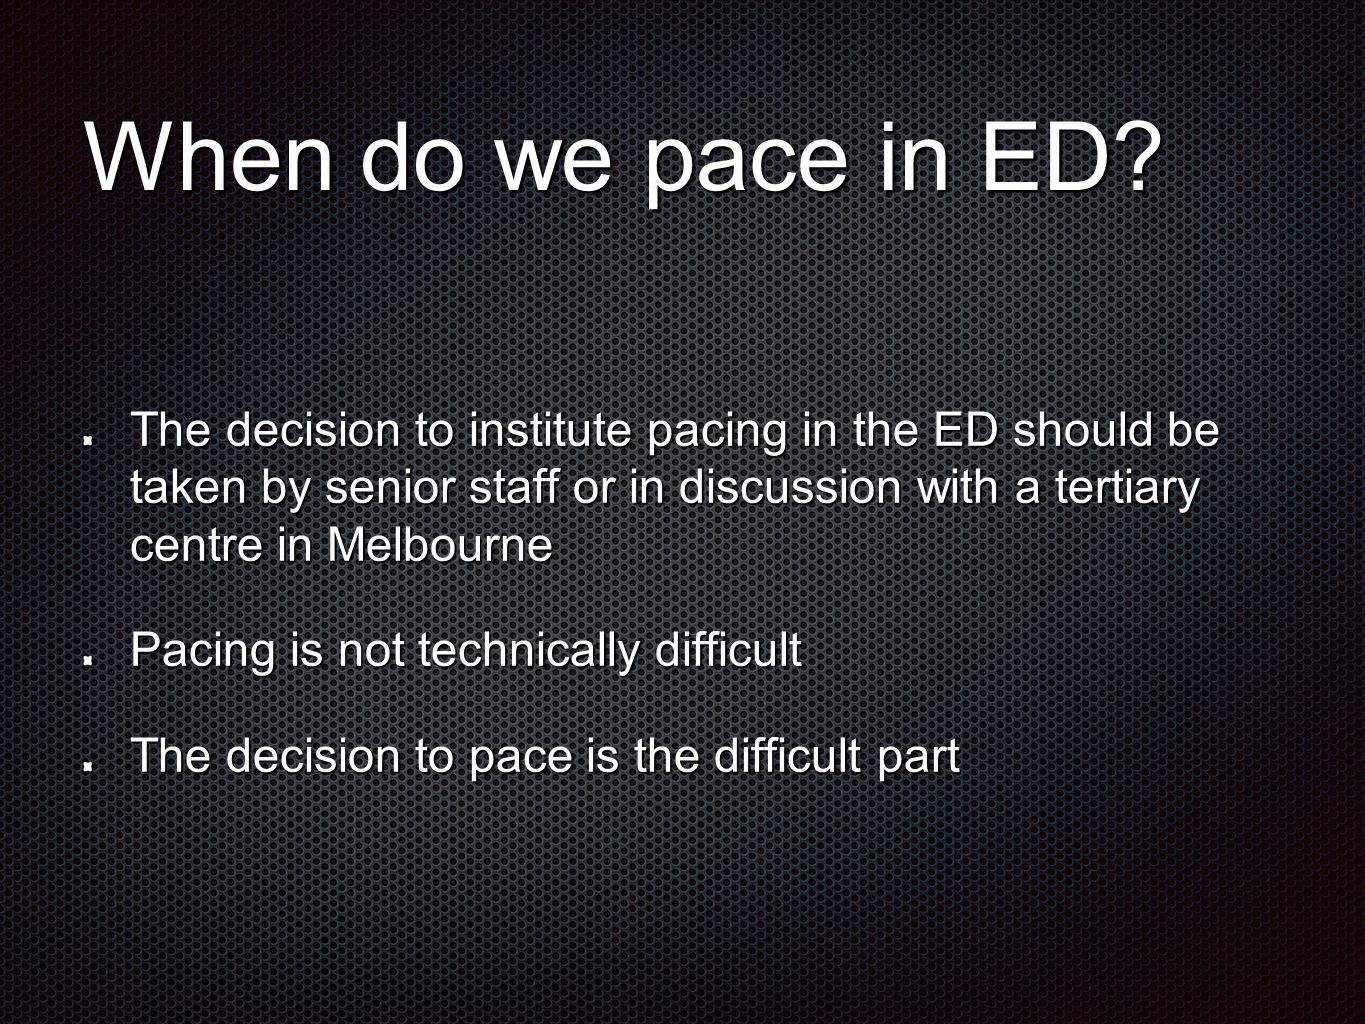 When do we pace in ED? The decision to institute pacing in the ED should be taken by senior staff or in discussion with a tertiary centre in Melbourne